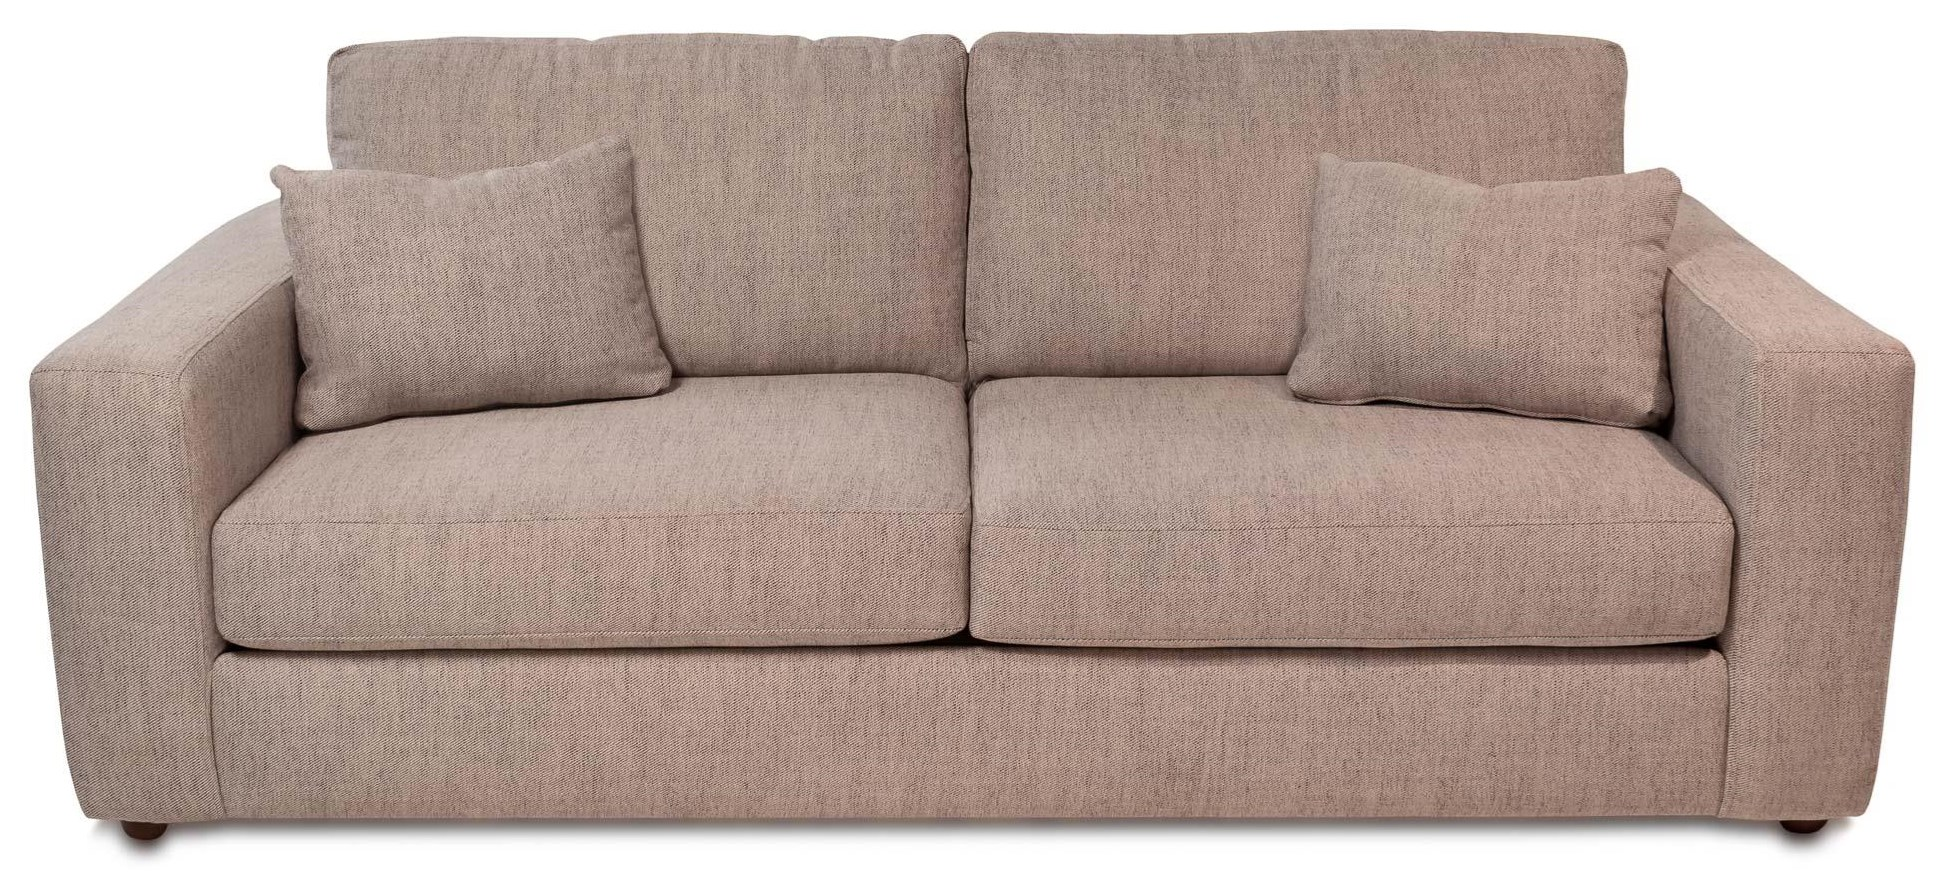 Healey Contemporary 2-Seat Sofa w/ Wide Track Arms | Rotmans | Sofas